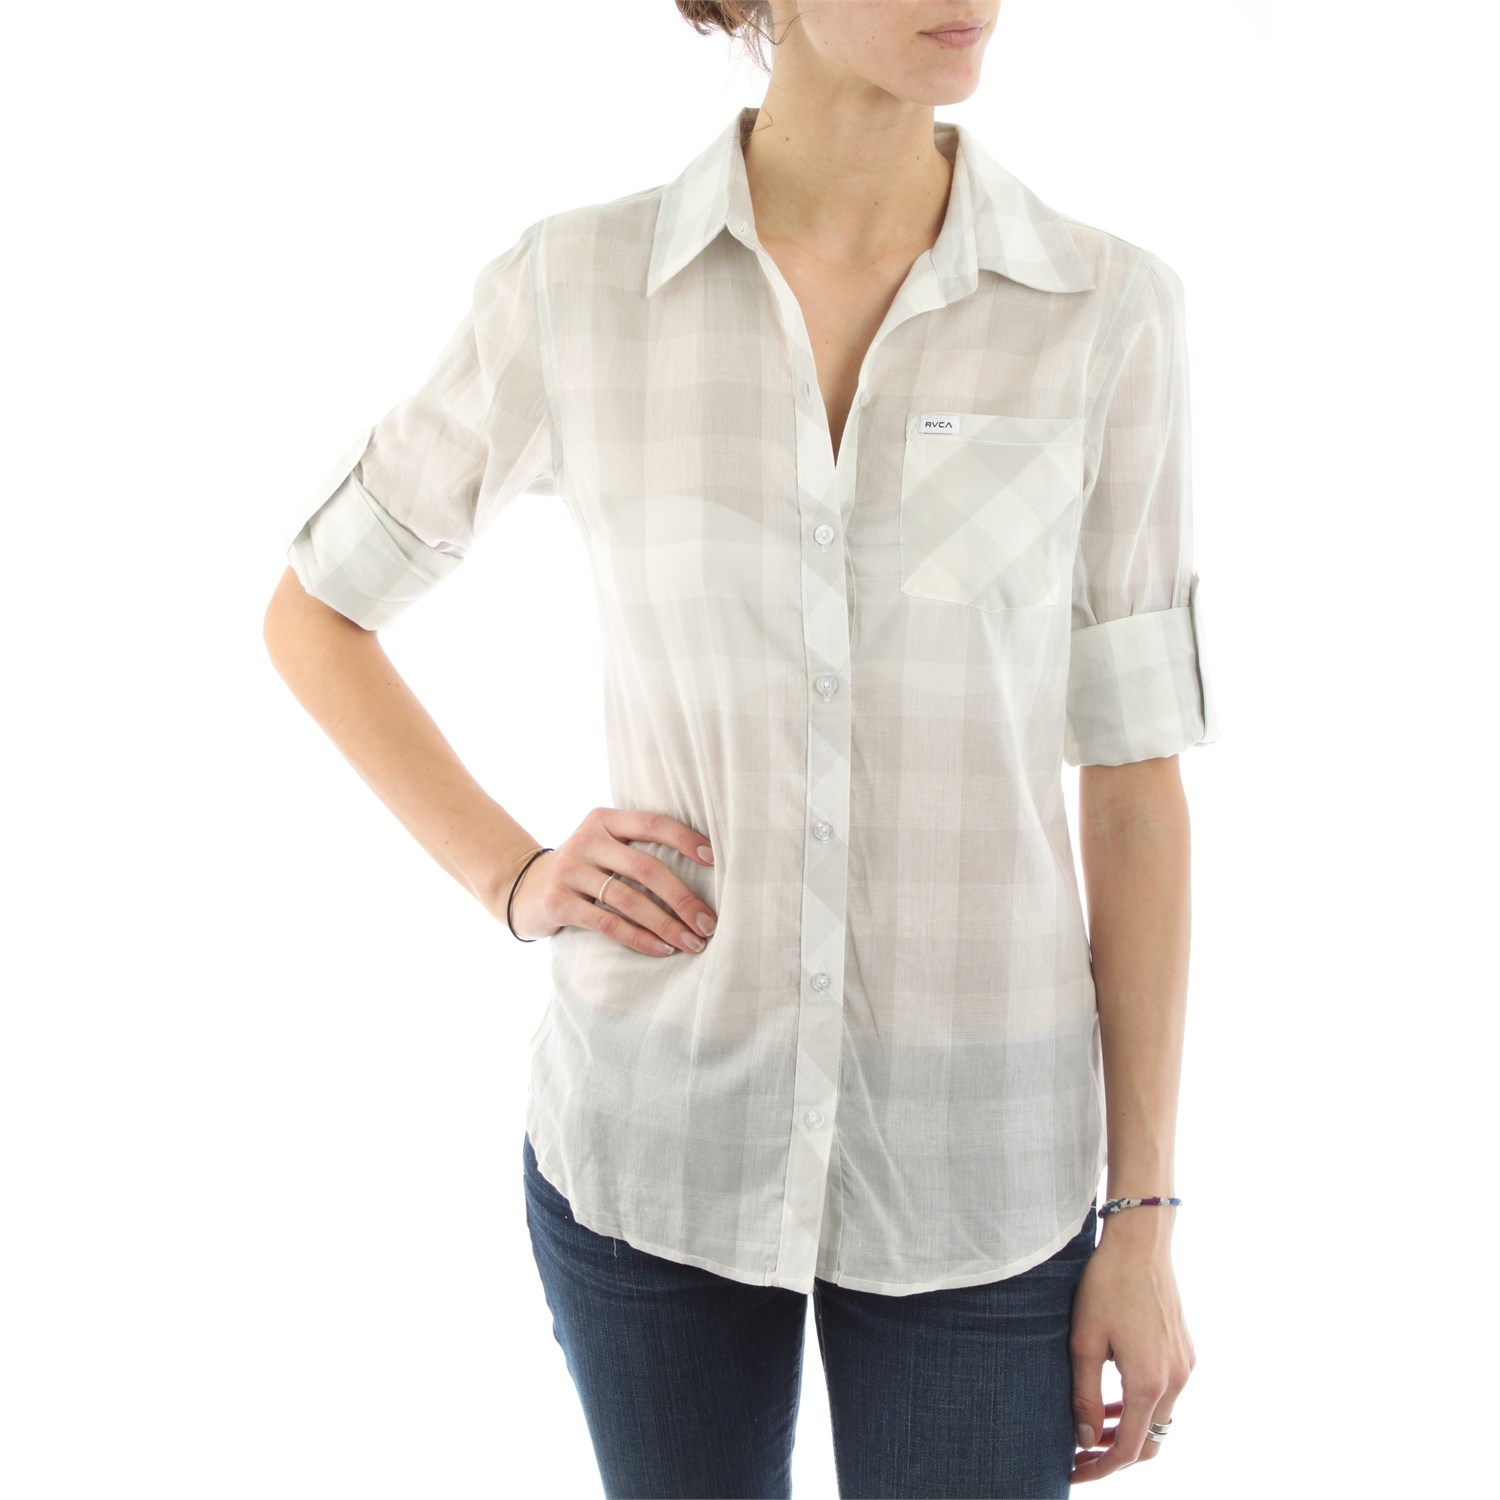 Find great deals on eBay for womens button down shirt. Shop with confidence.